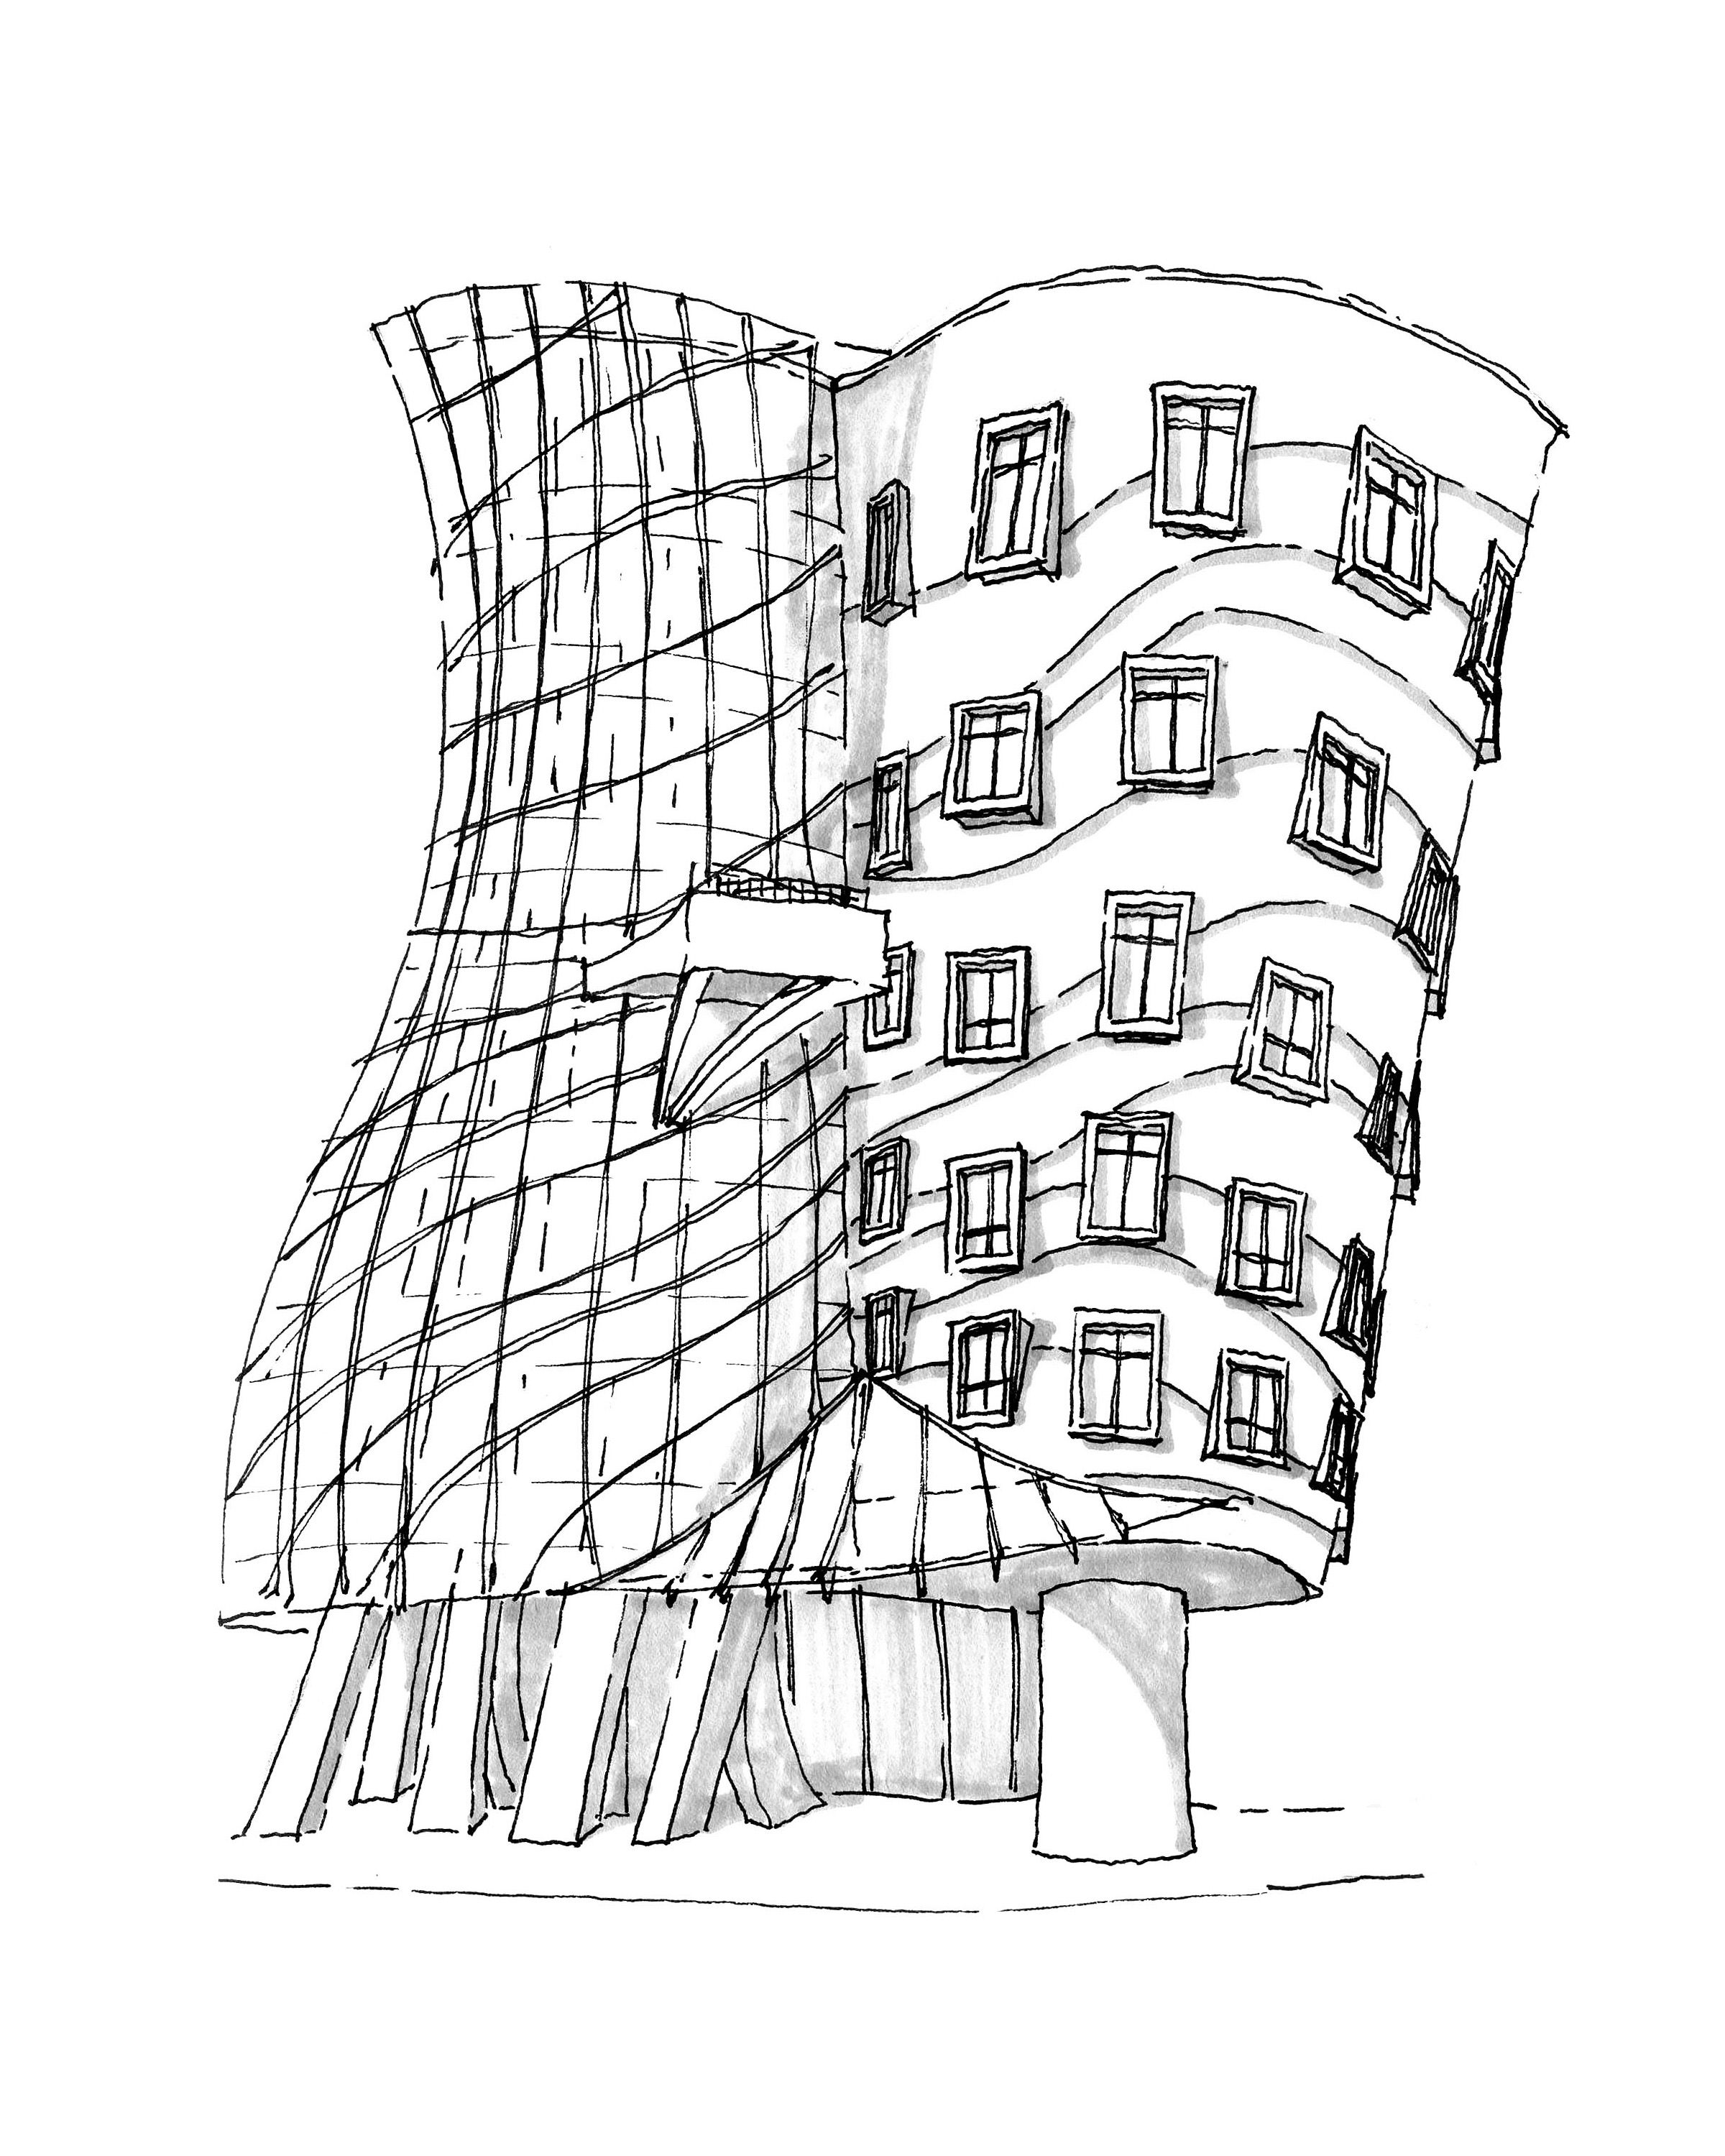 Hand drawn perspective of the fred dancing house designed by frank gehry prague czech republic spring 2012 architecture studio